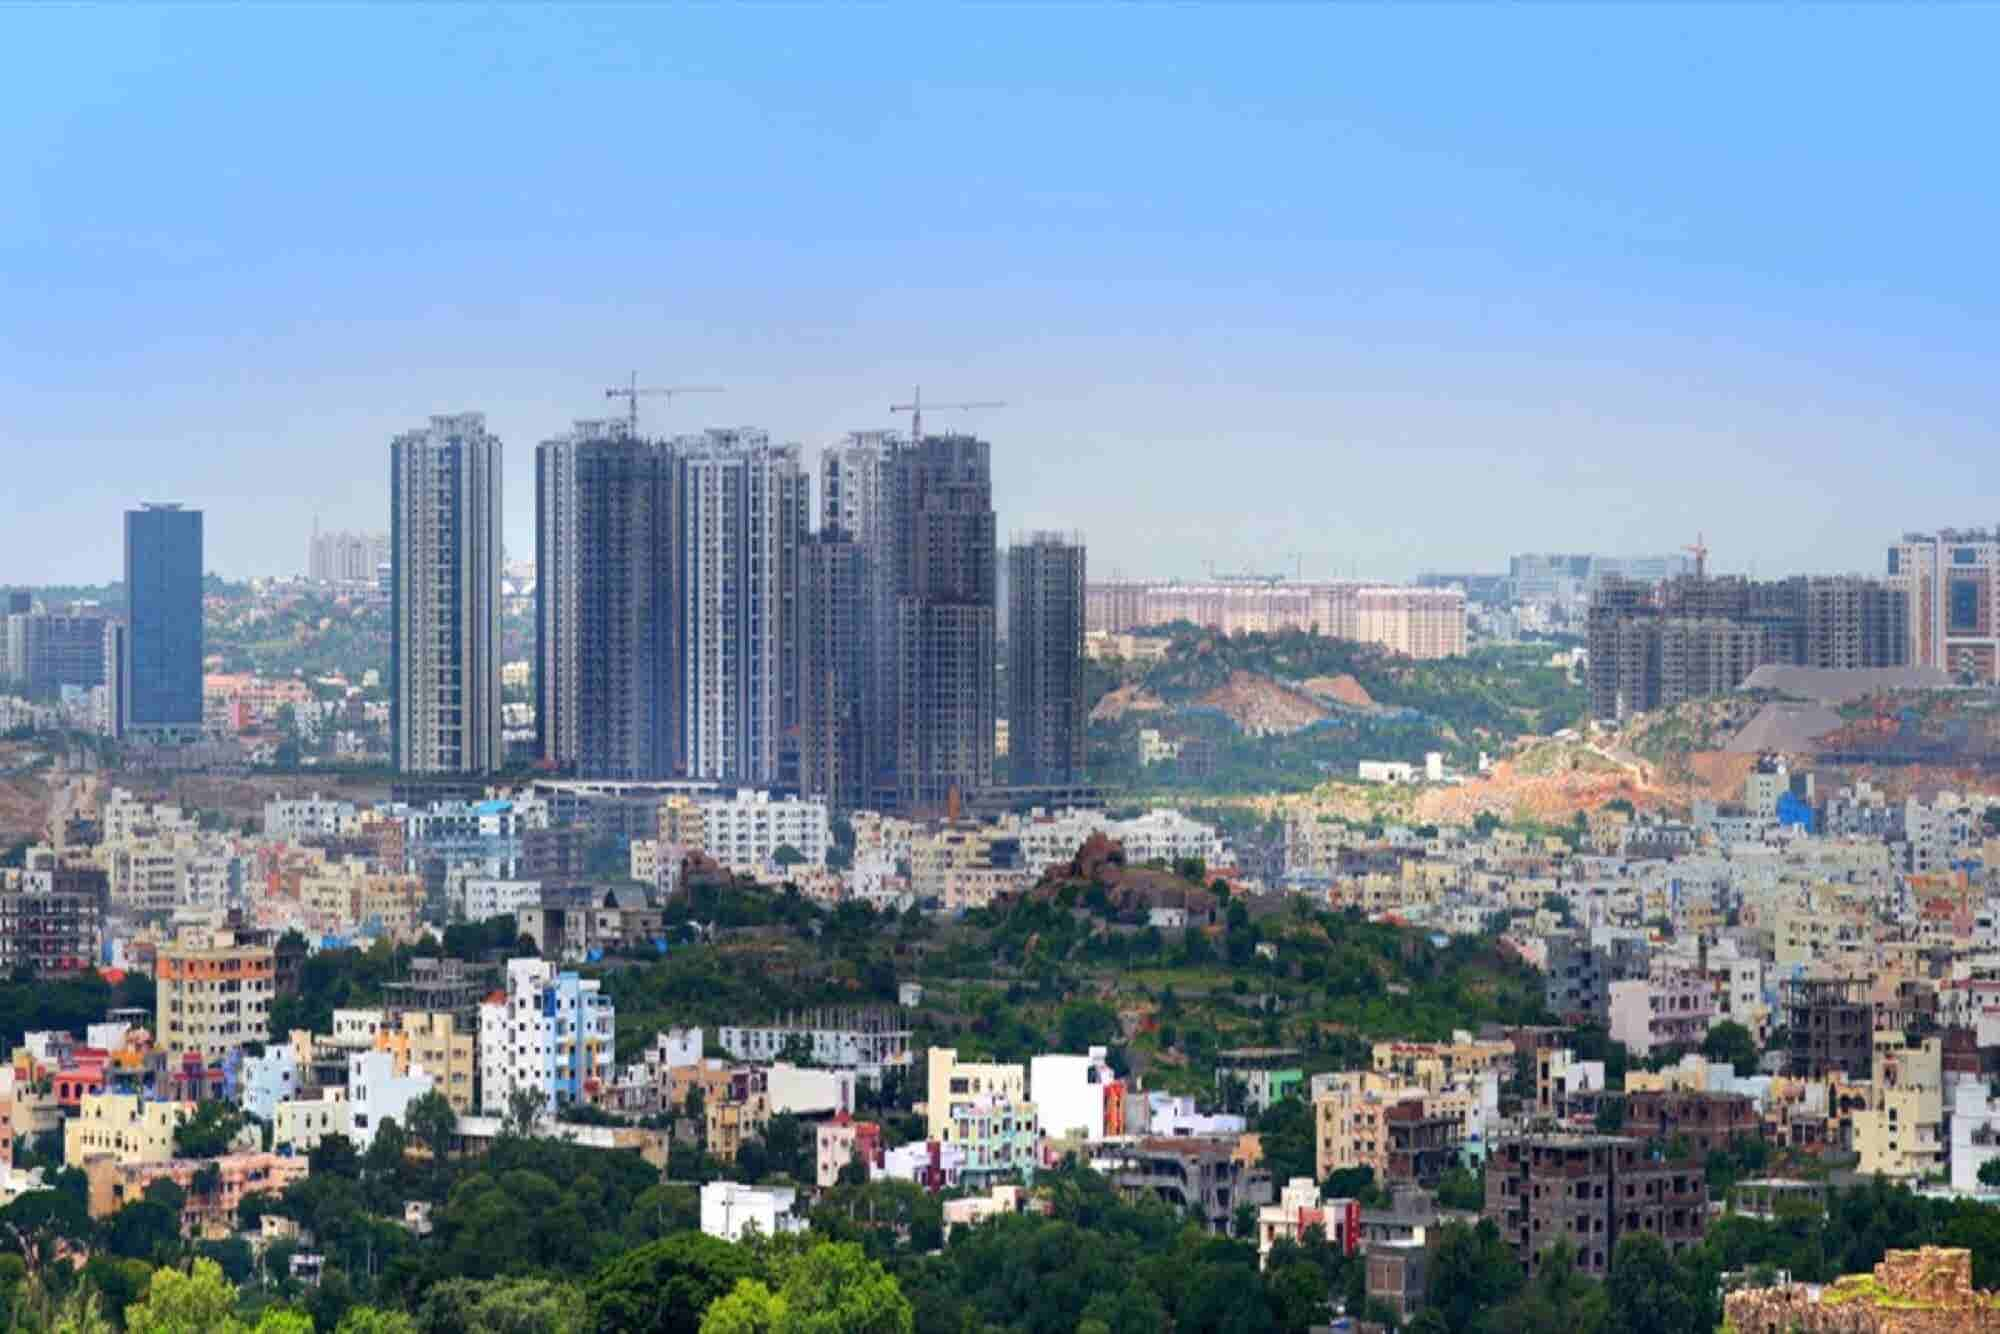 Hyderabad Touted To Be The Next Silicon Valley of India